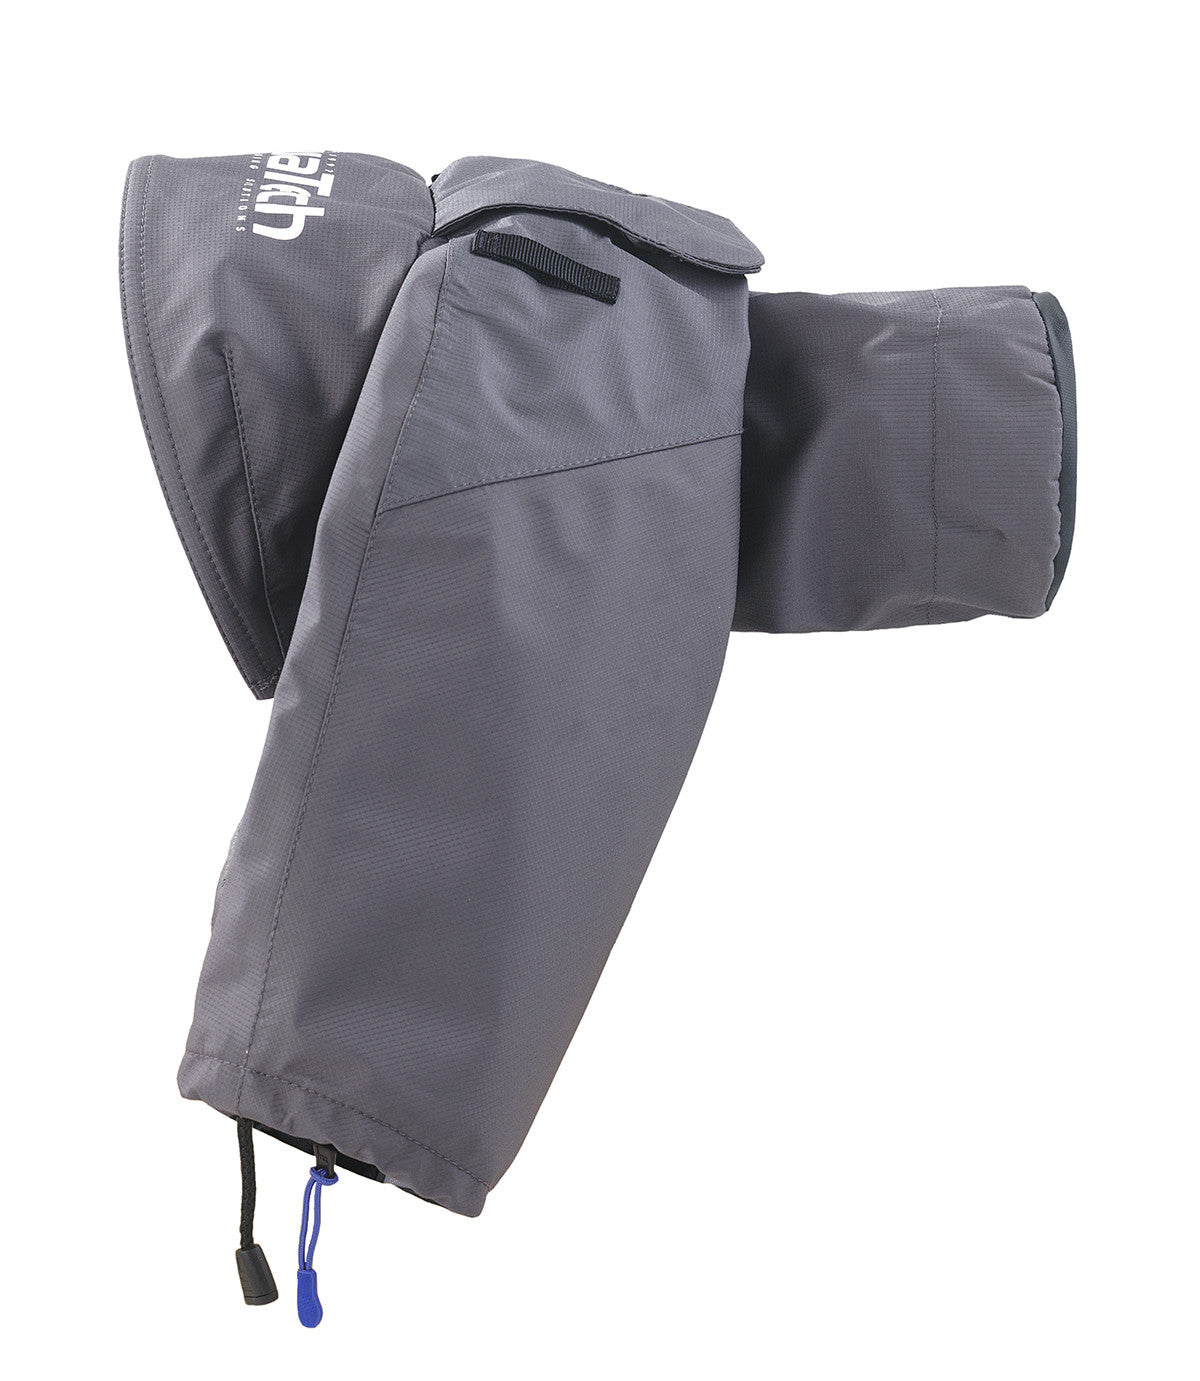 SSRC SMALL - Camera Rain Cover product shot